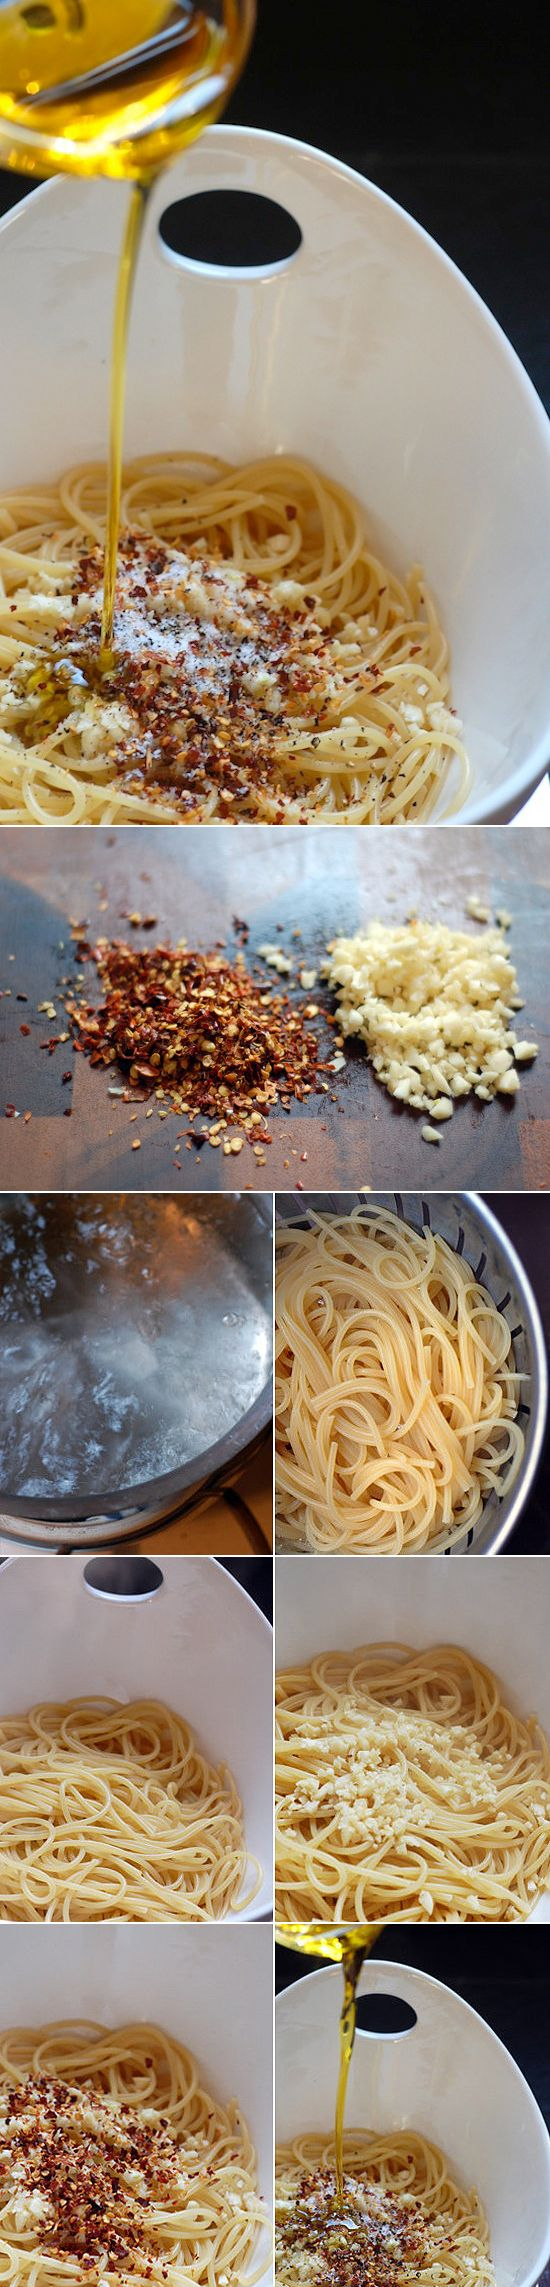 Spaghetti aglio, olio, e peperoncino is a traditional Italian pasta dish. It's well loved by many because it's so easy and inexpensive to make. This is a perfect solution whenever you're in a bind. For example, if guests come over and you've got nothing to serve, they are certain to be wowed when you present them with this meal.